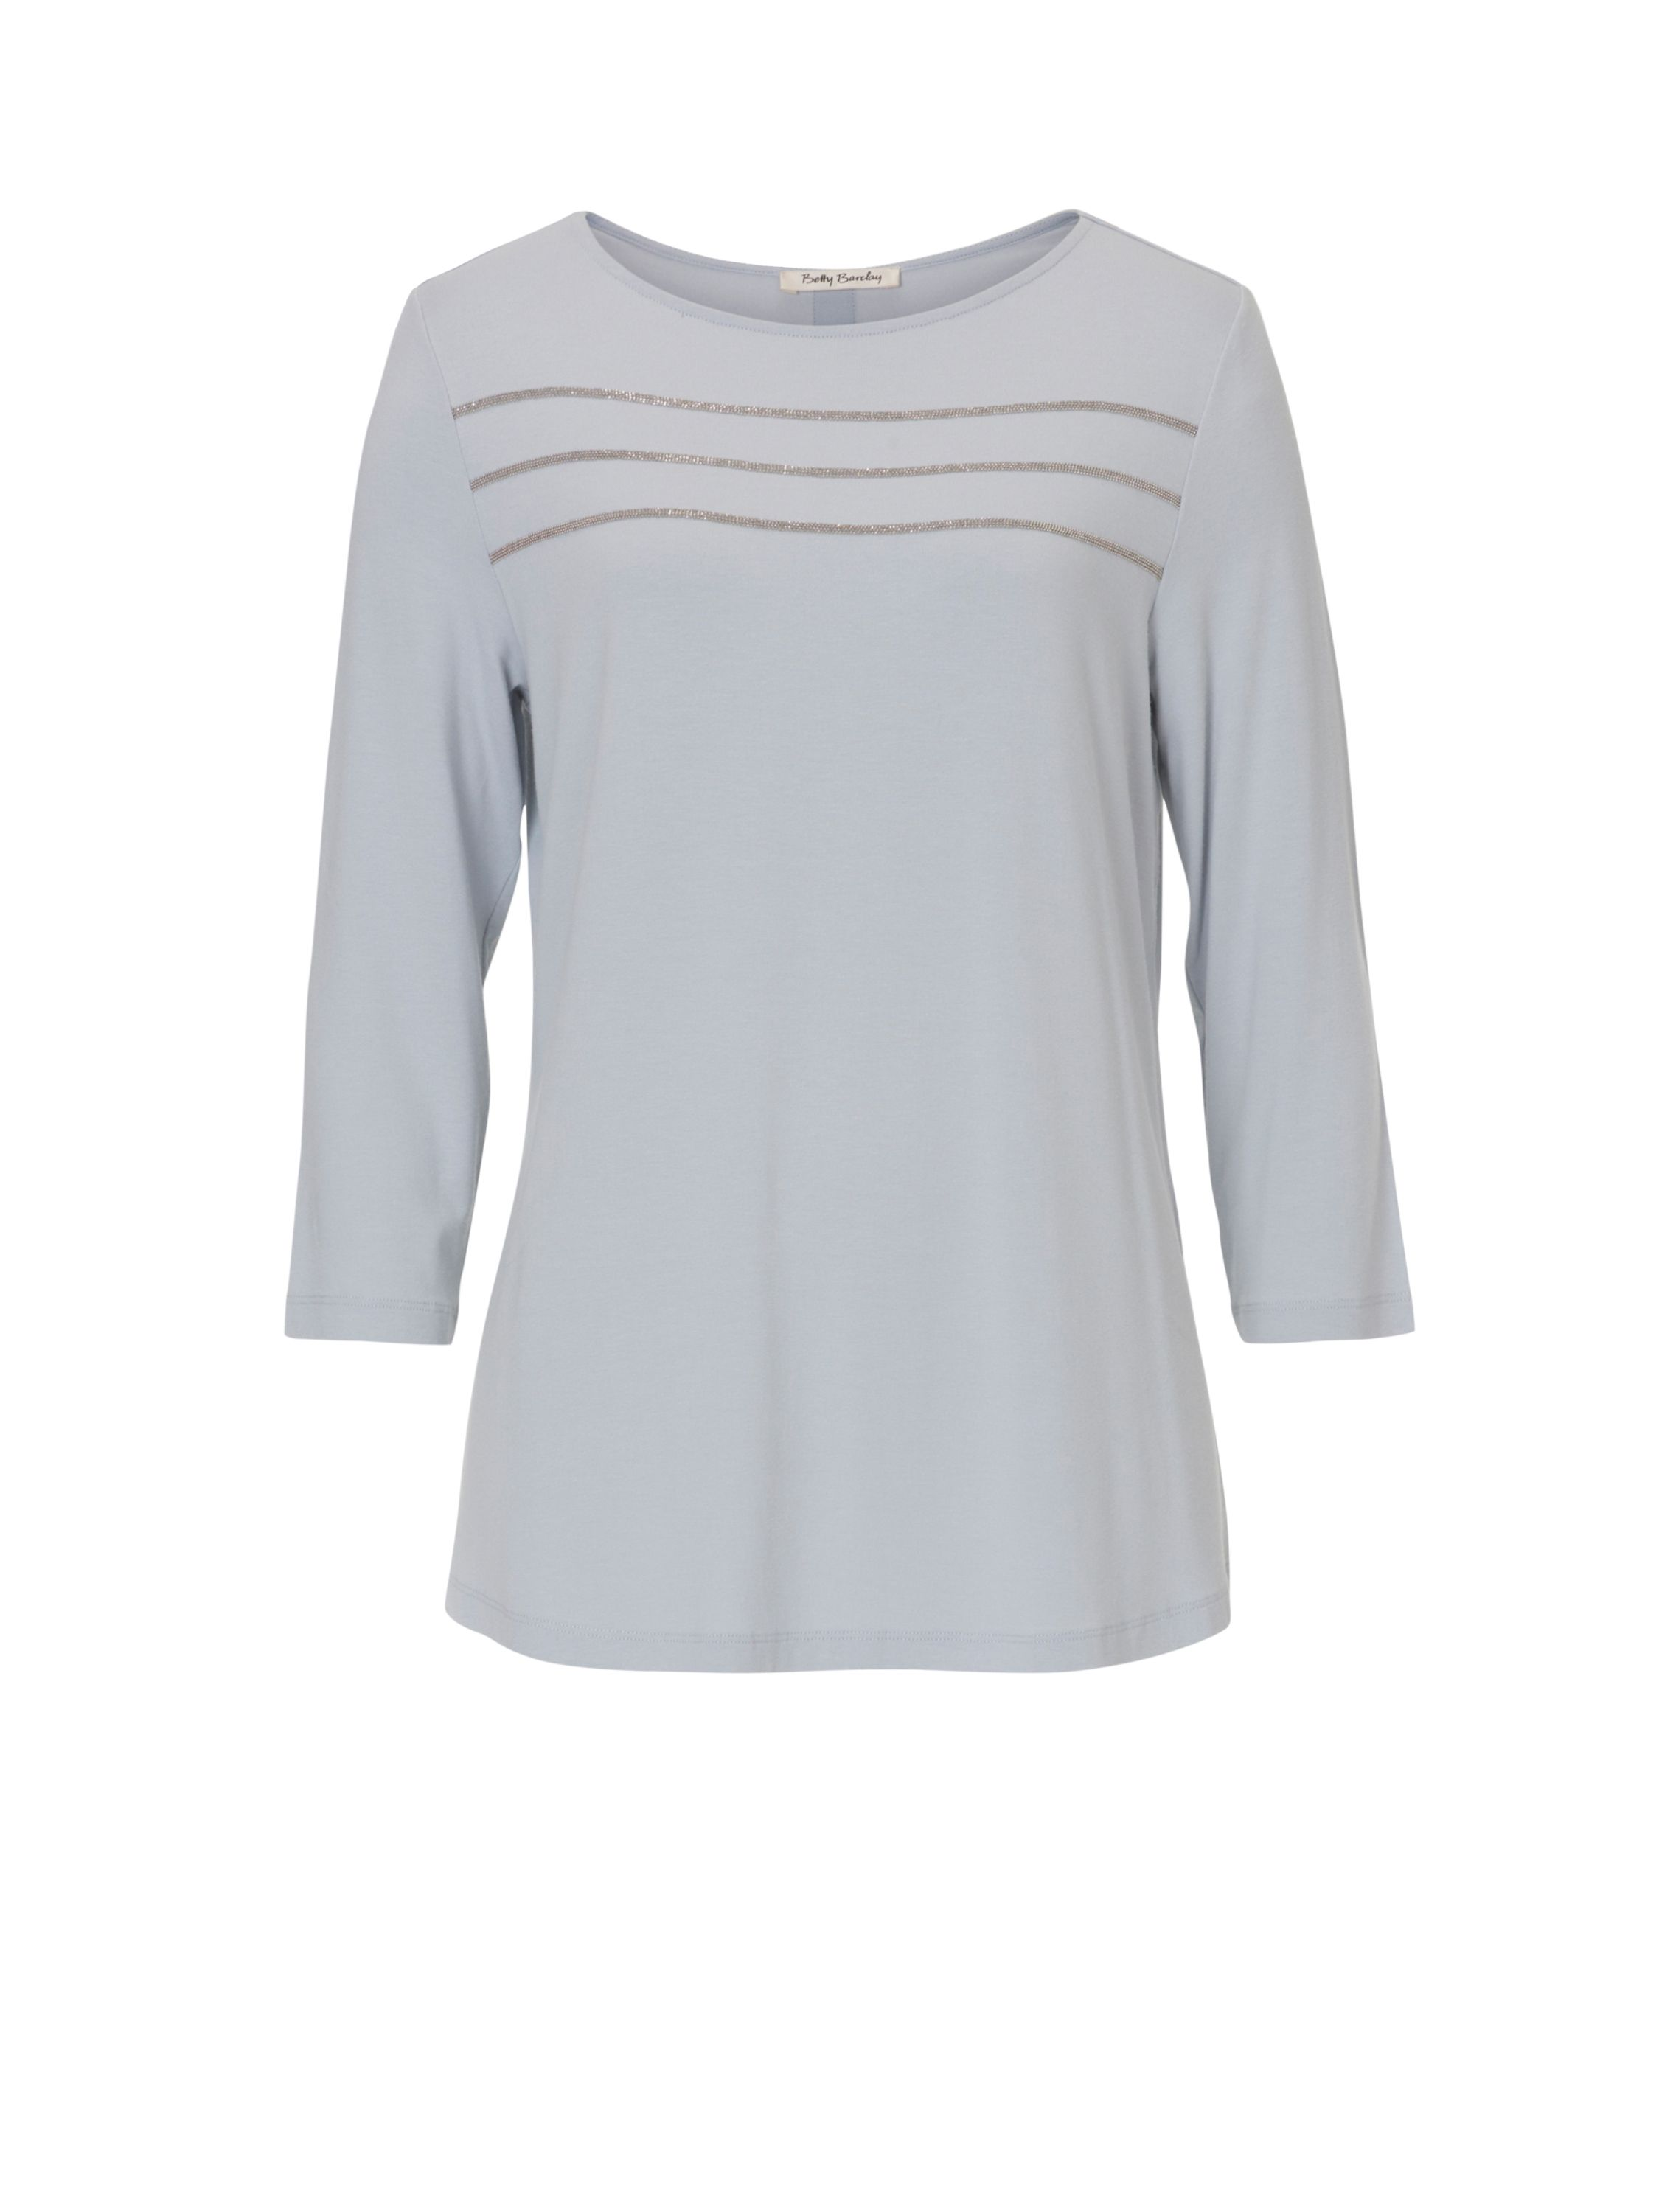 Betty Barclay Embellished T-shirt, Silver